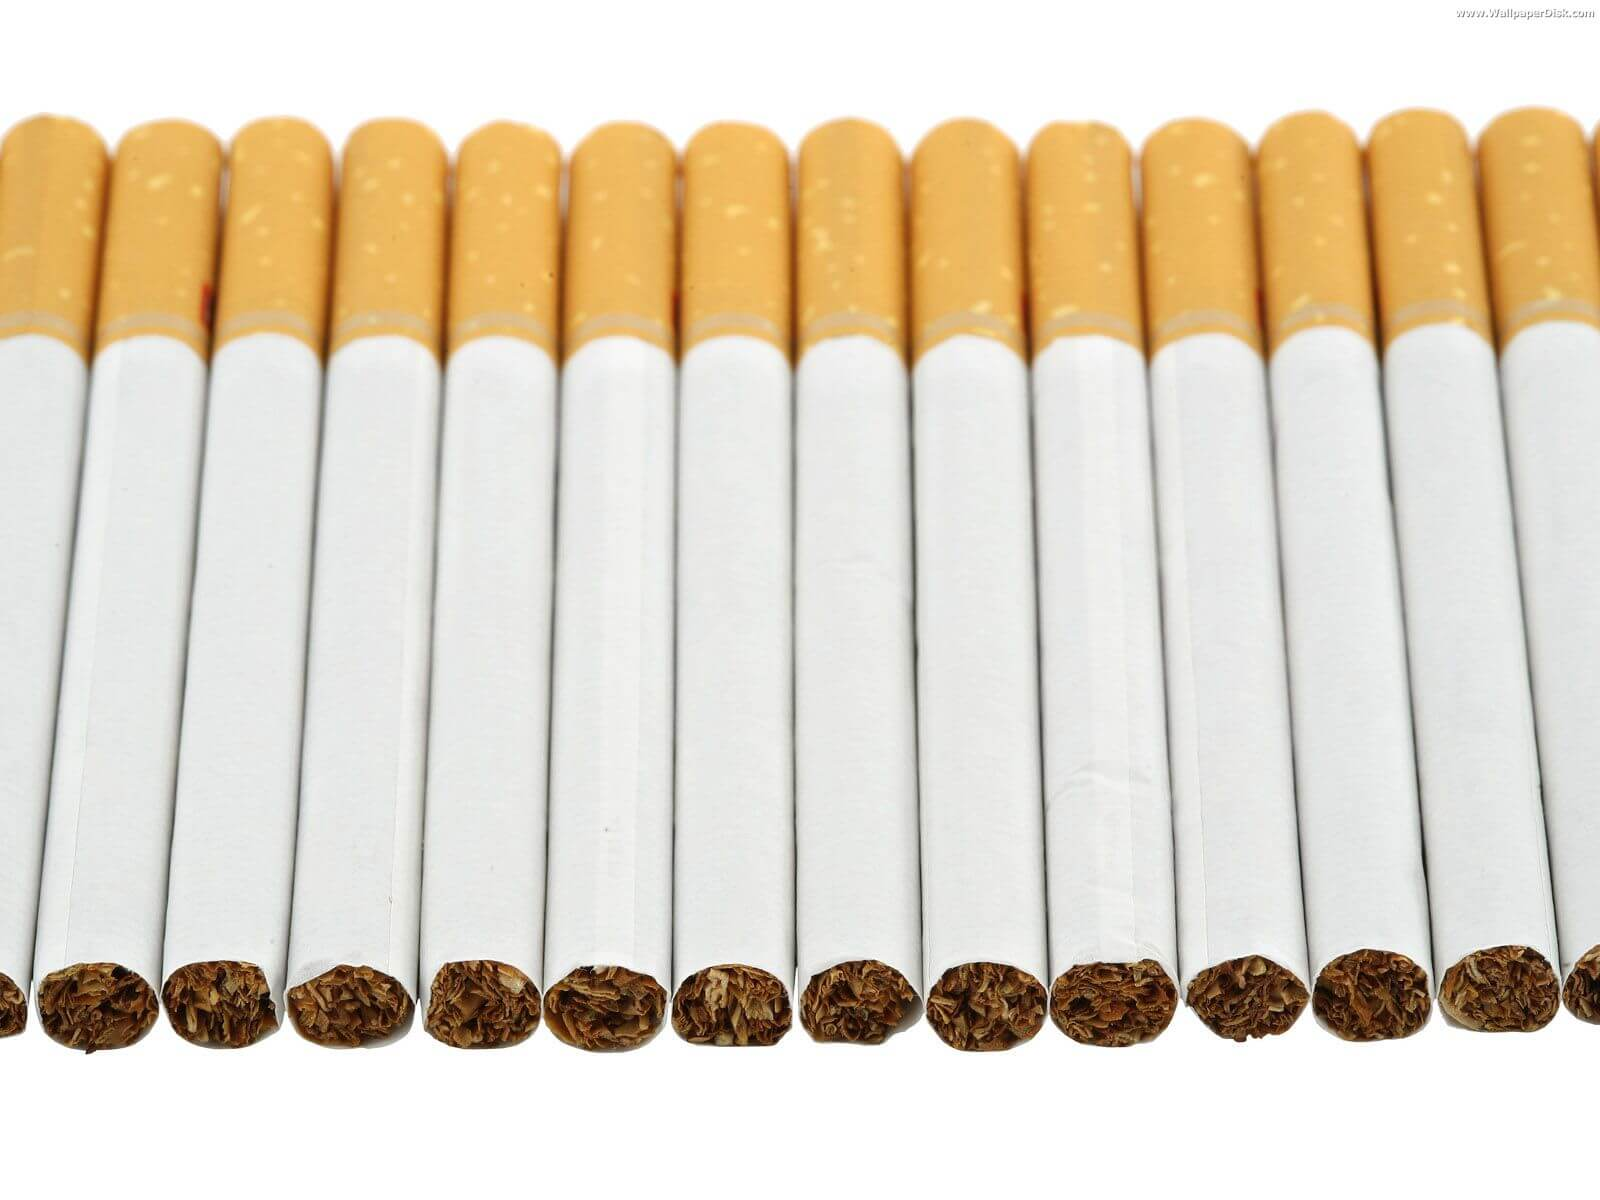 superkings menthol cigarette price